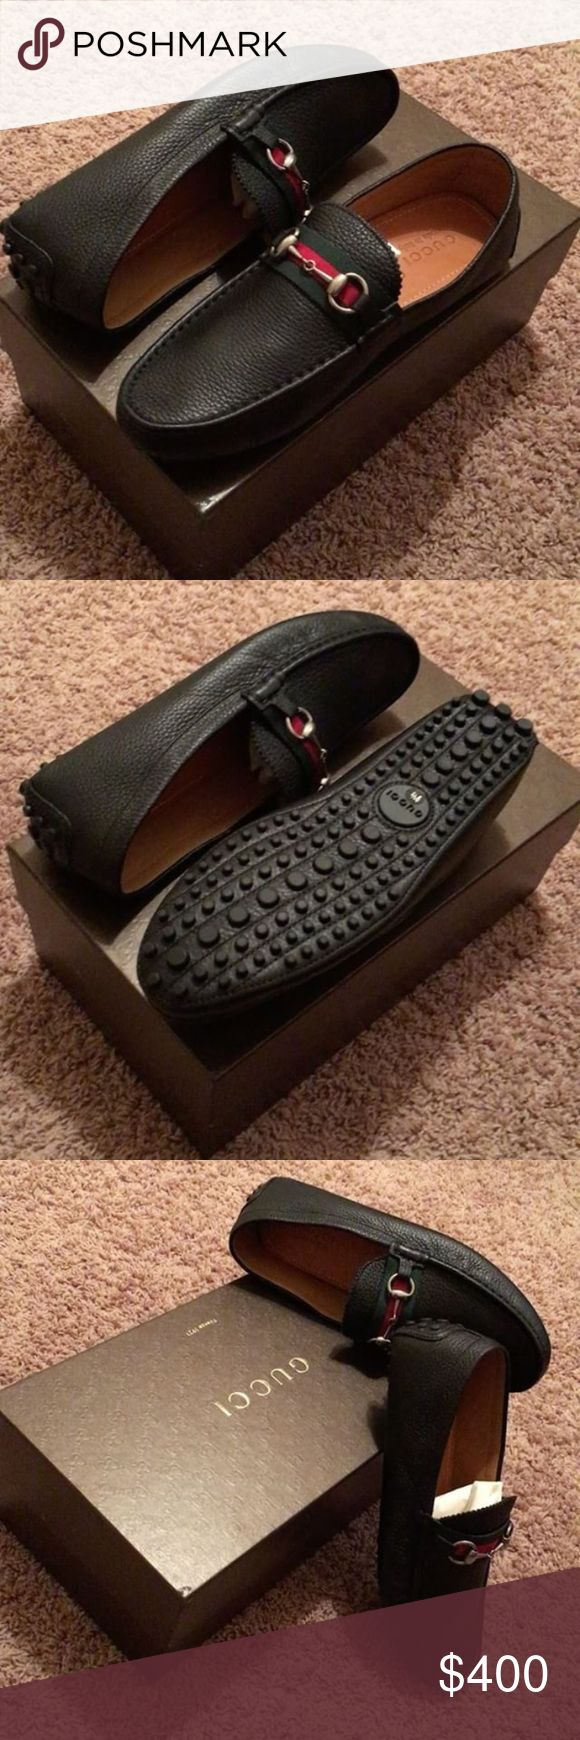 Men's Black Gucci Horse Bit Driving Loafers Currently in Stores! | NIB ( New in Box) Men's Gucci Horse Bit Driving Loafers | Timeless Piece by Gucci | Size: 9.5; regular width Gucci Shoes Loafers & Slip-Ons